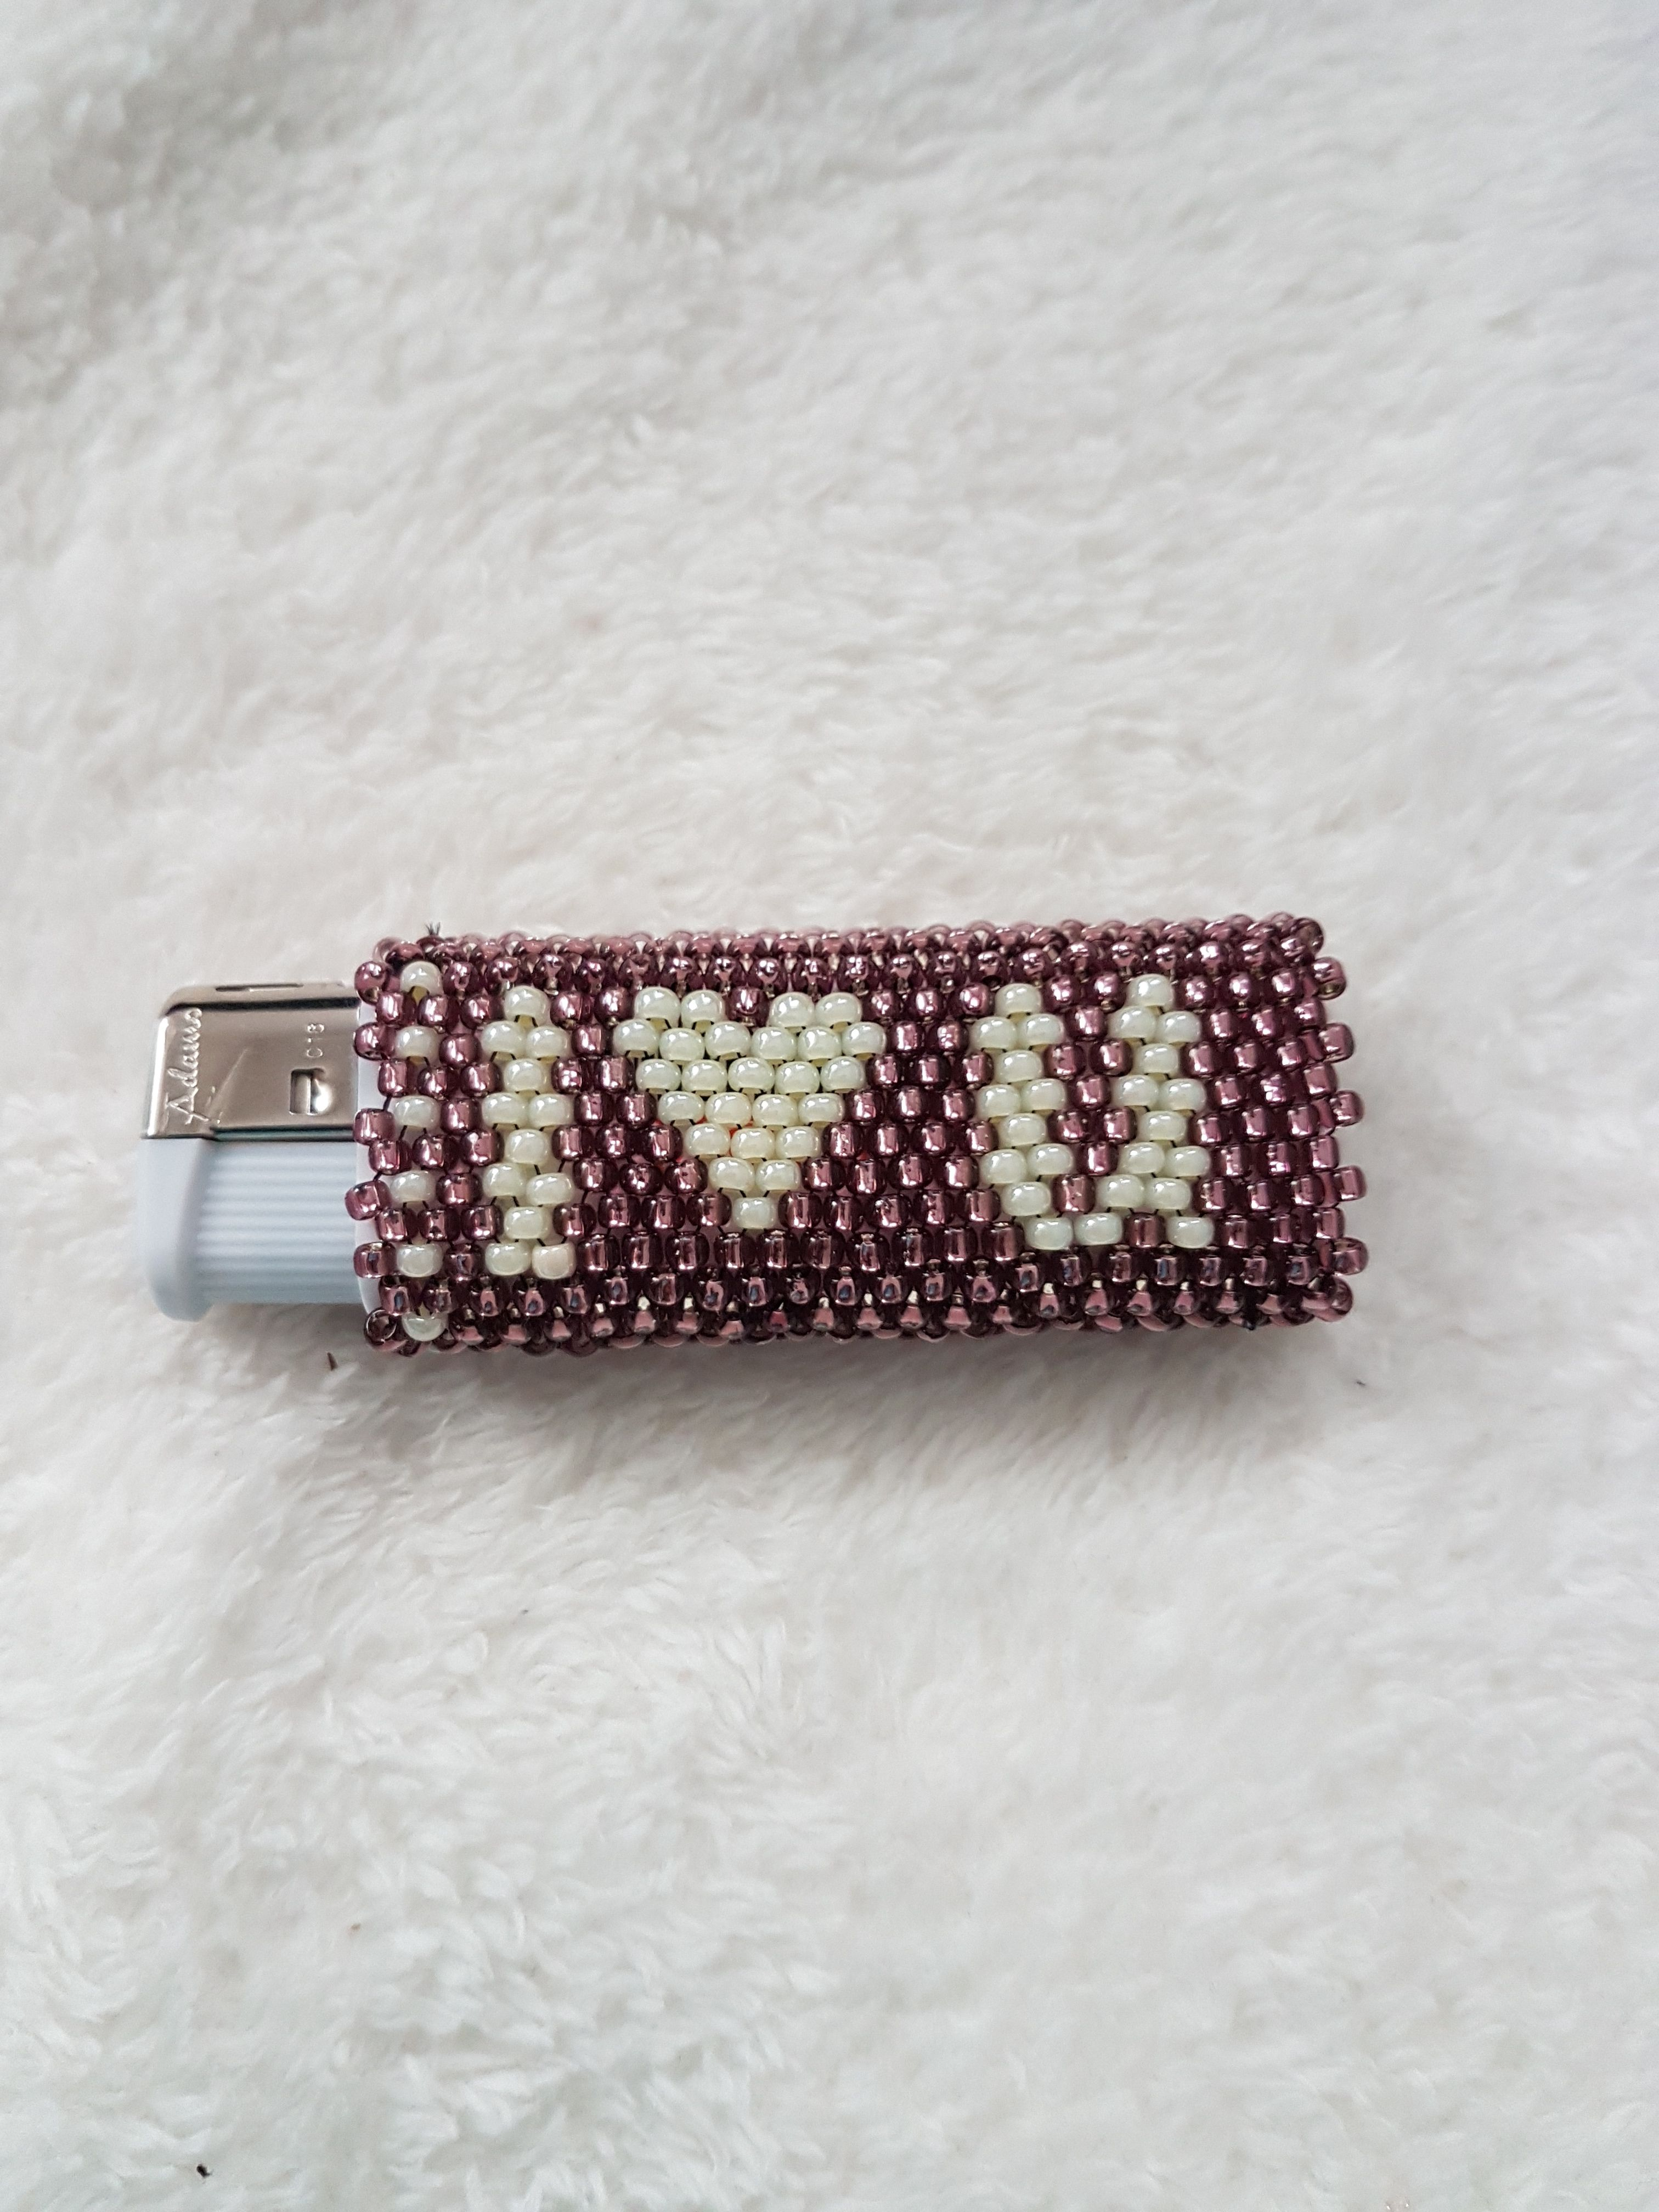 Pin by joyce wehrman on lighter cover flash drive usb